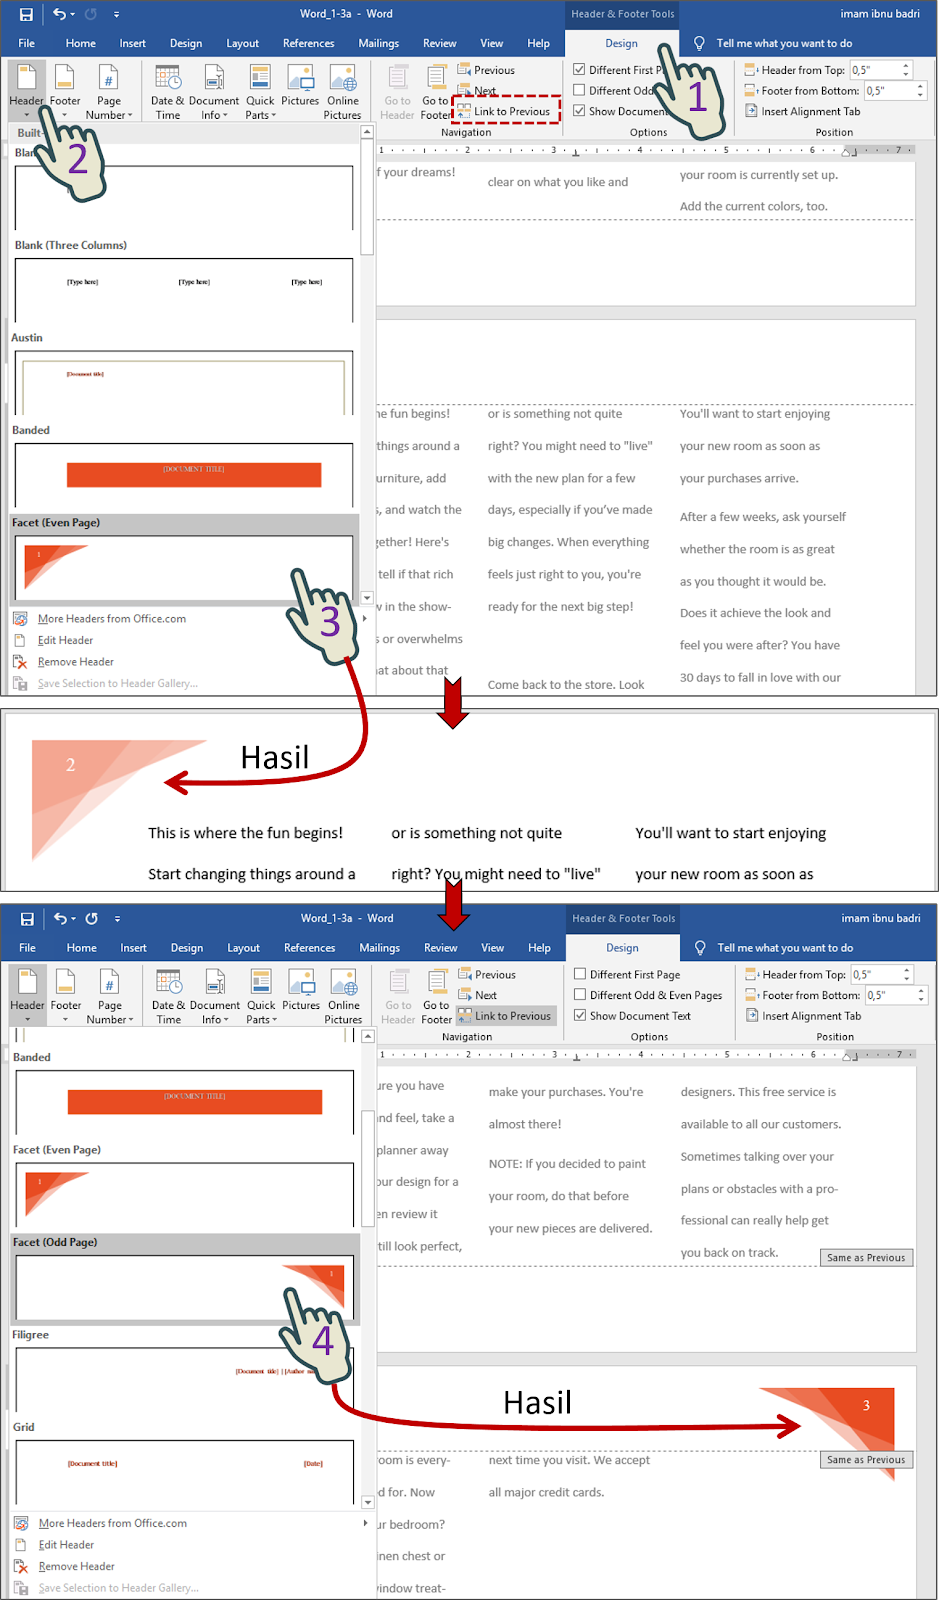 Add a Facet (Even Page) header to page 2, and a Facet (Odd Page) header to page 3